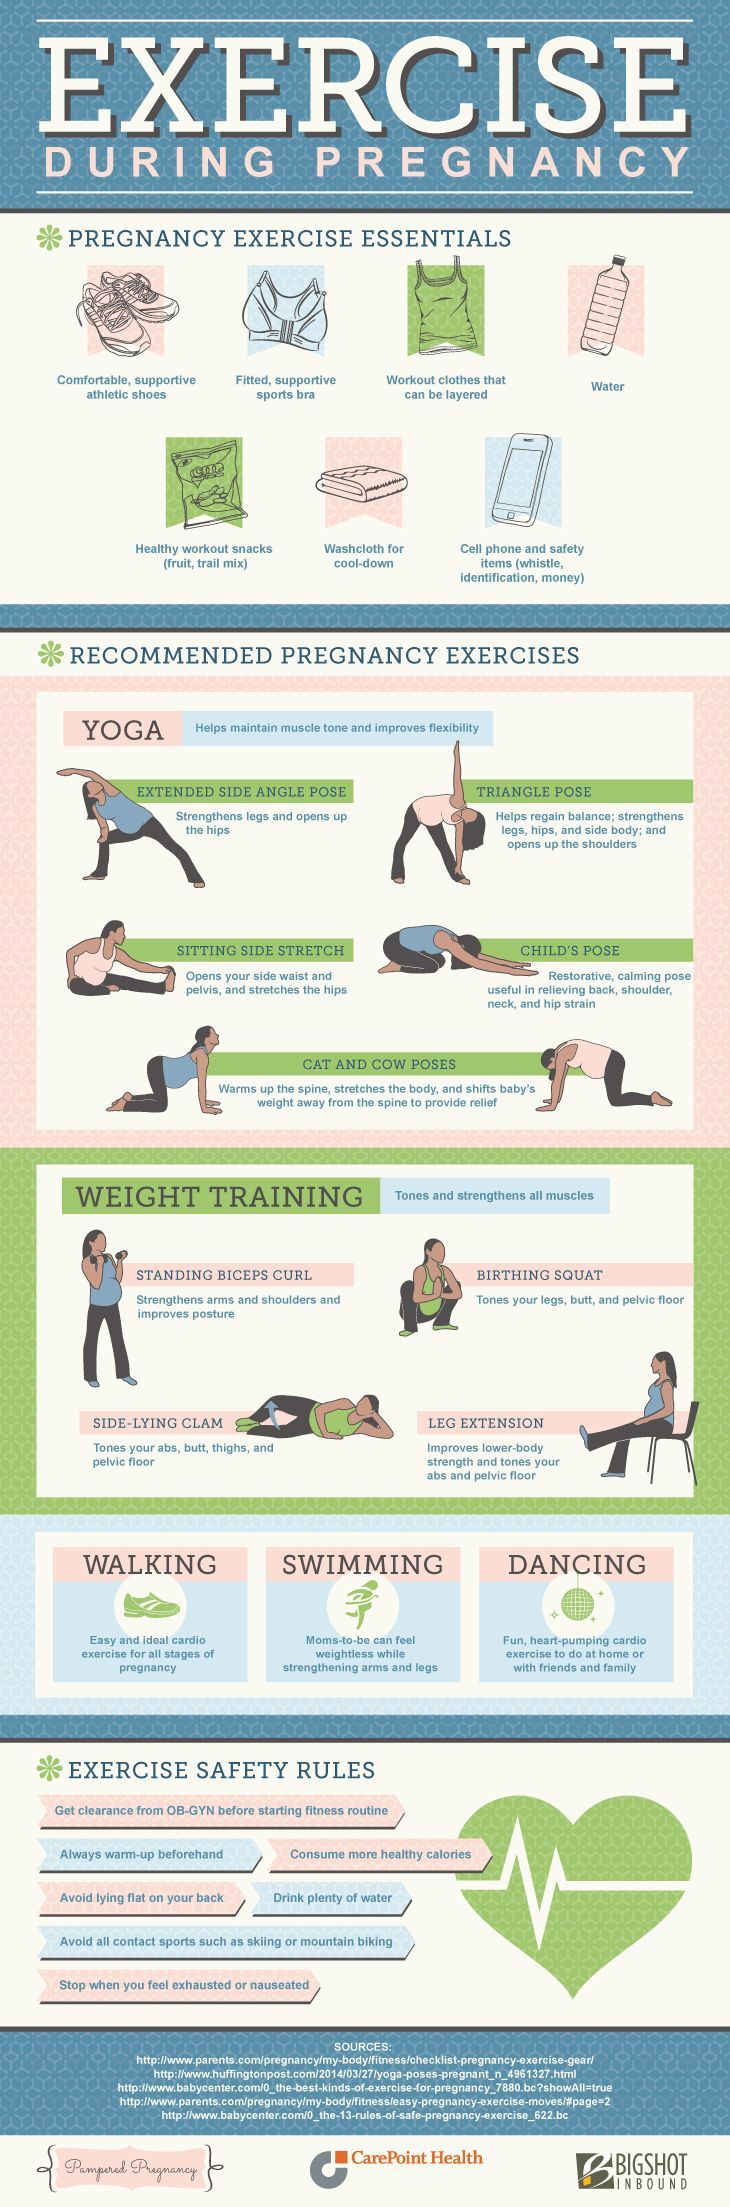 25+ best ideas about Exercise during pregnancy on ...